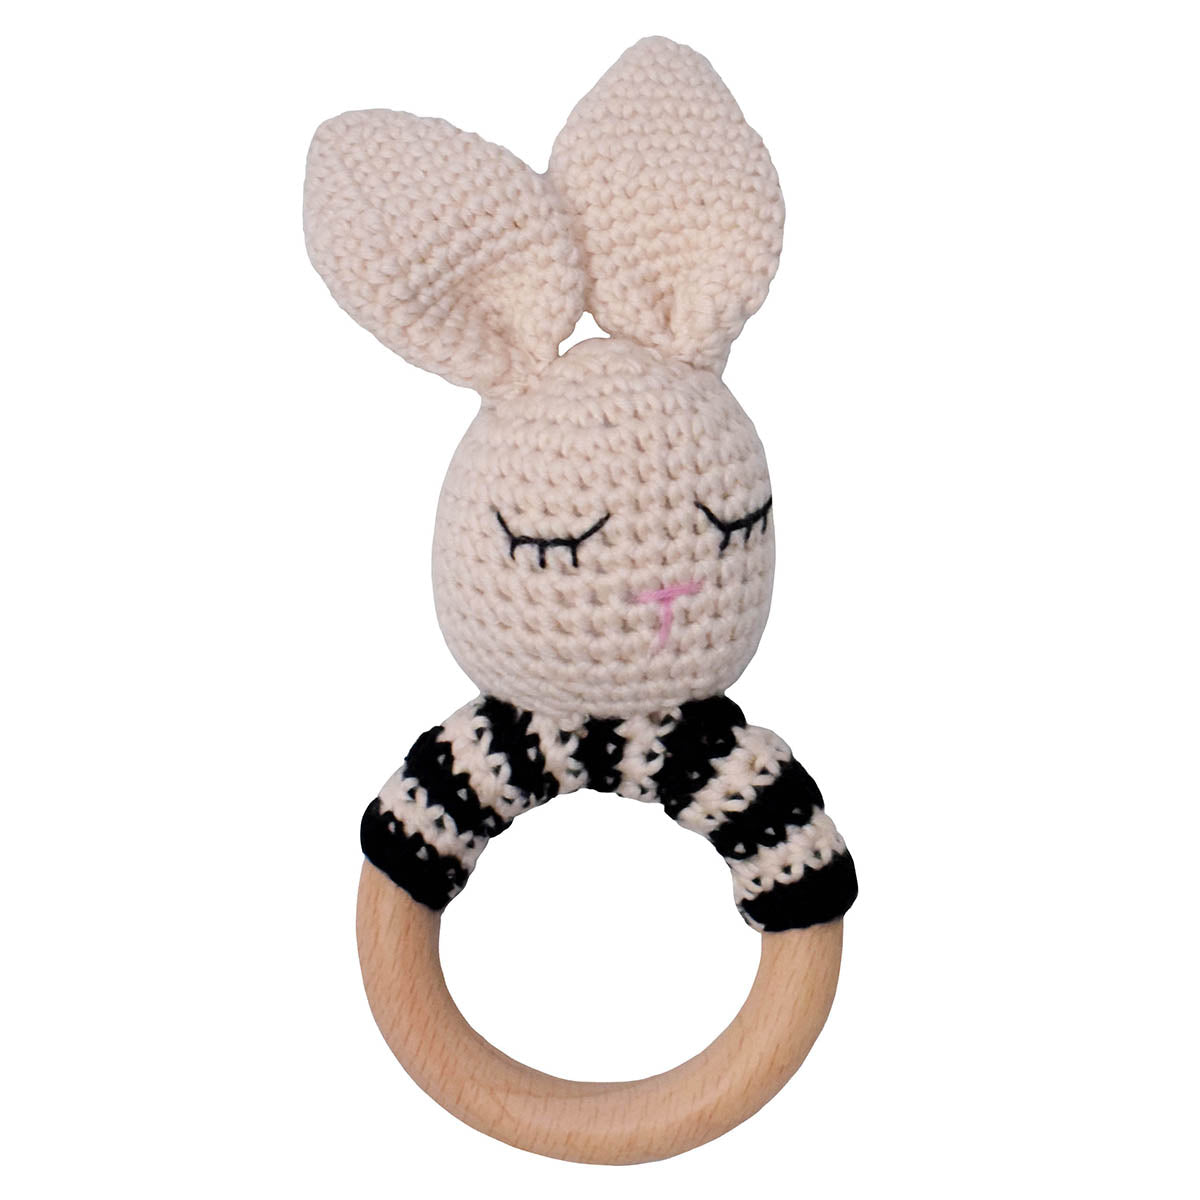 Ivory and Black Bunny Crochet Rattle with Beechwood Handle